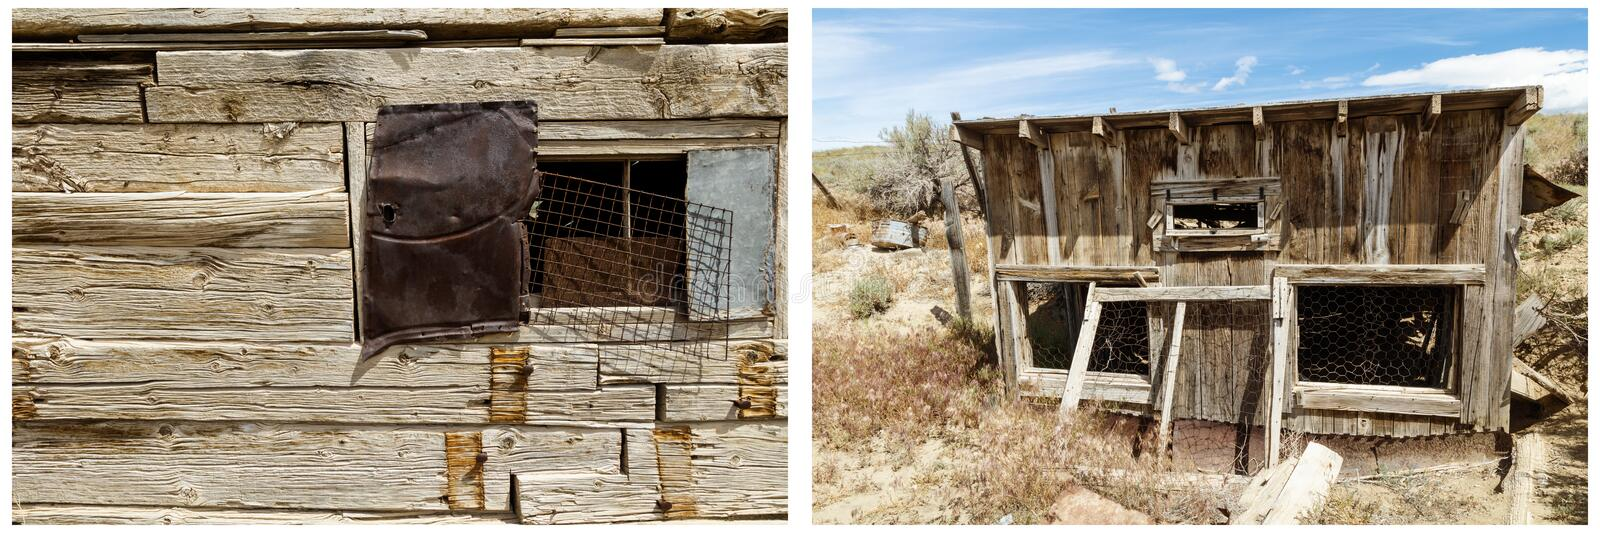 Square log old building chicken coup collage. Western old square cottonwood trees logs cabin window copyspace chicken coup wire wooden construction livestock stock images